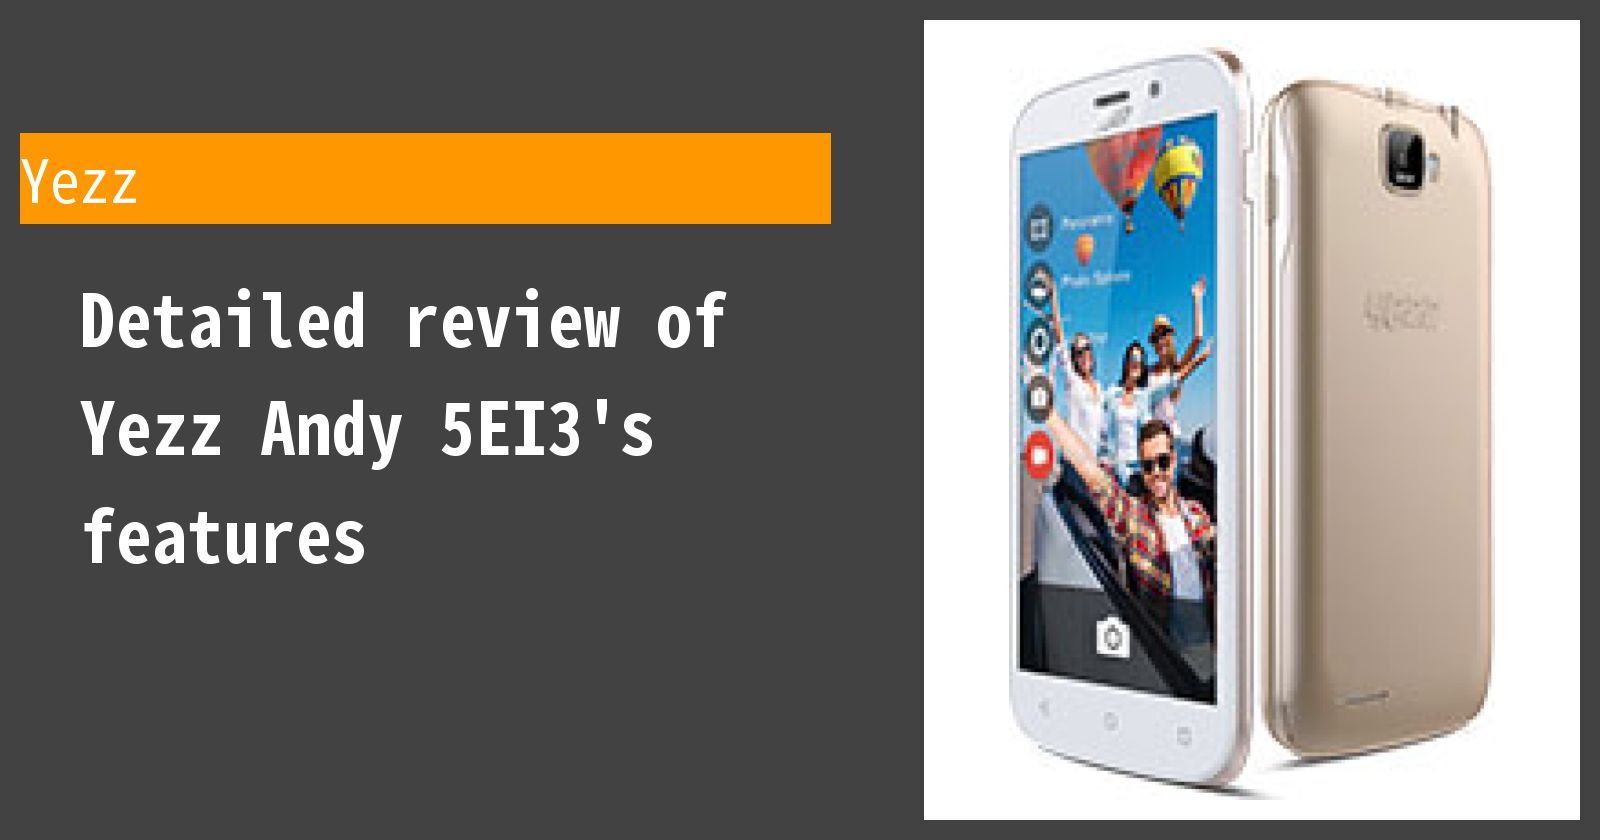 Detailed review of Yezz Andy 5EI3's features